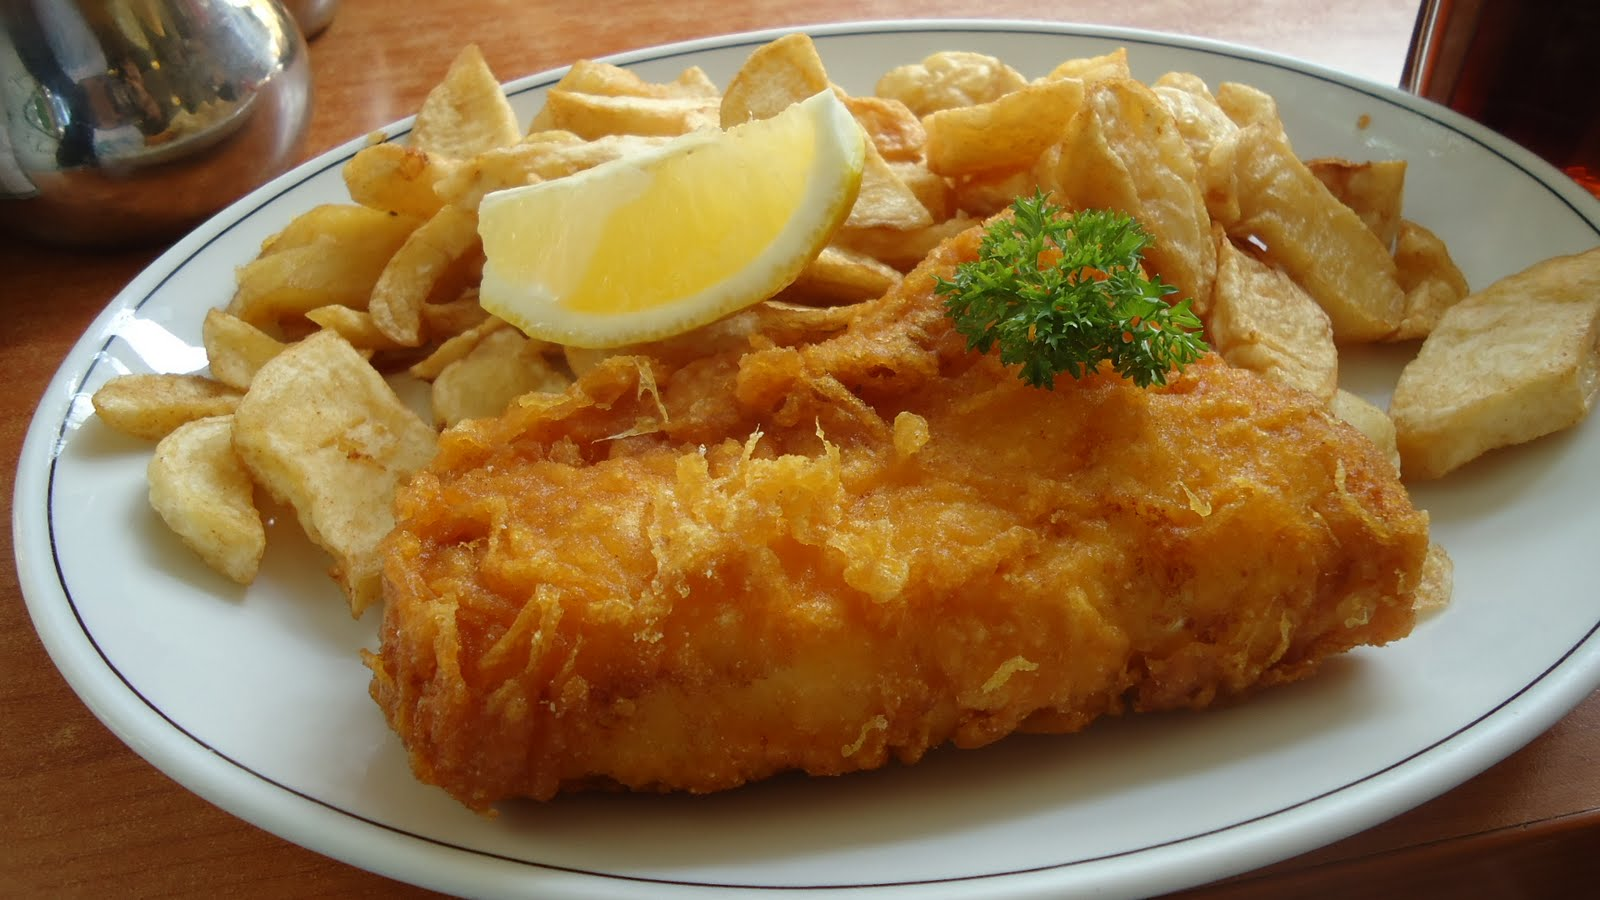 I Live to Eat and Eat to Live: Glorious Fish n Chips